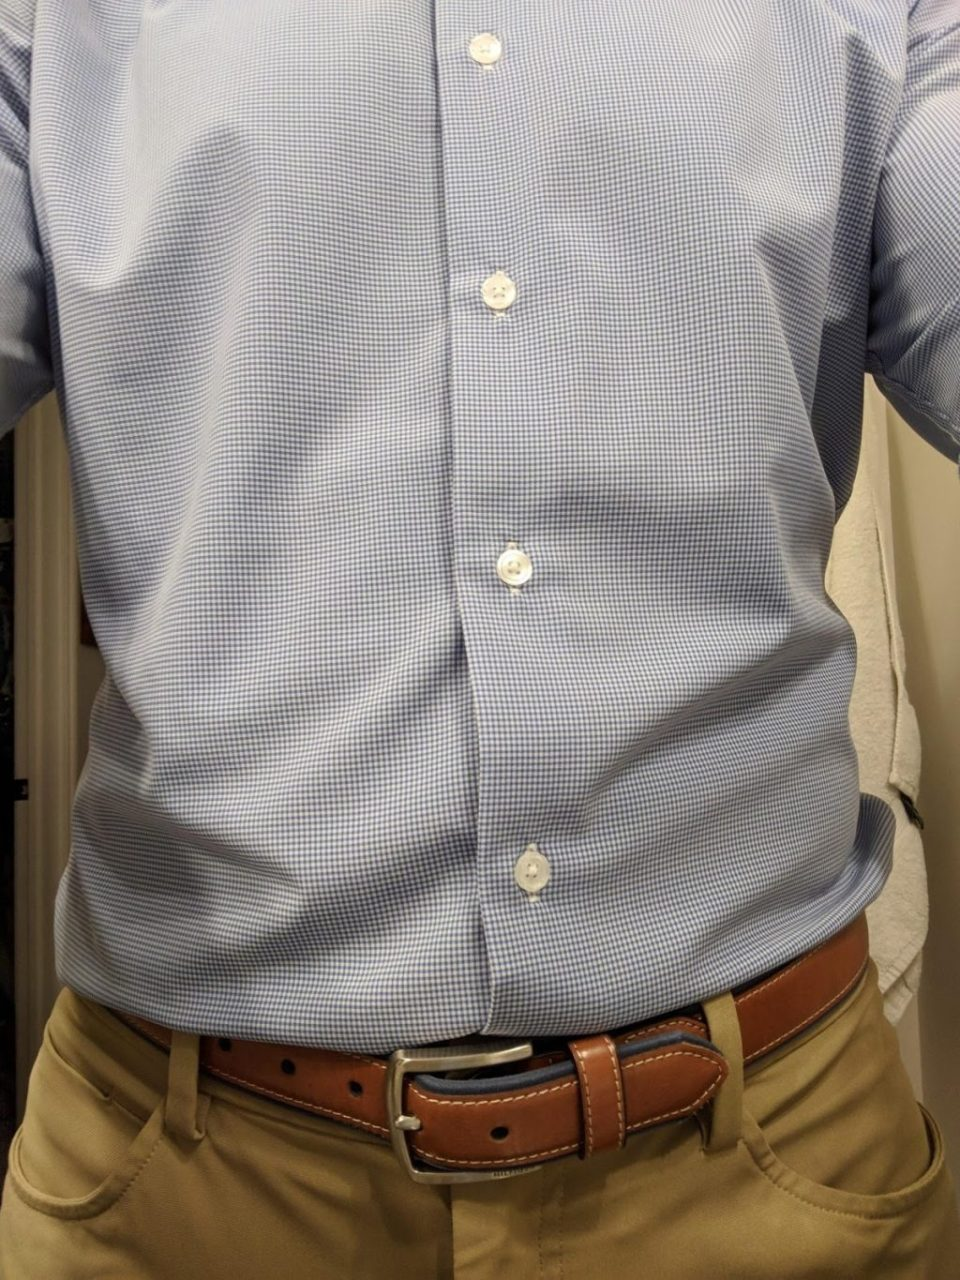 State and Liberty Shirt Review - Start Standing